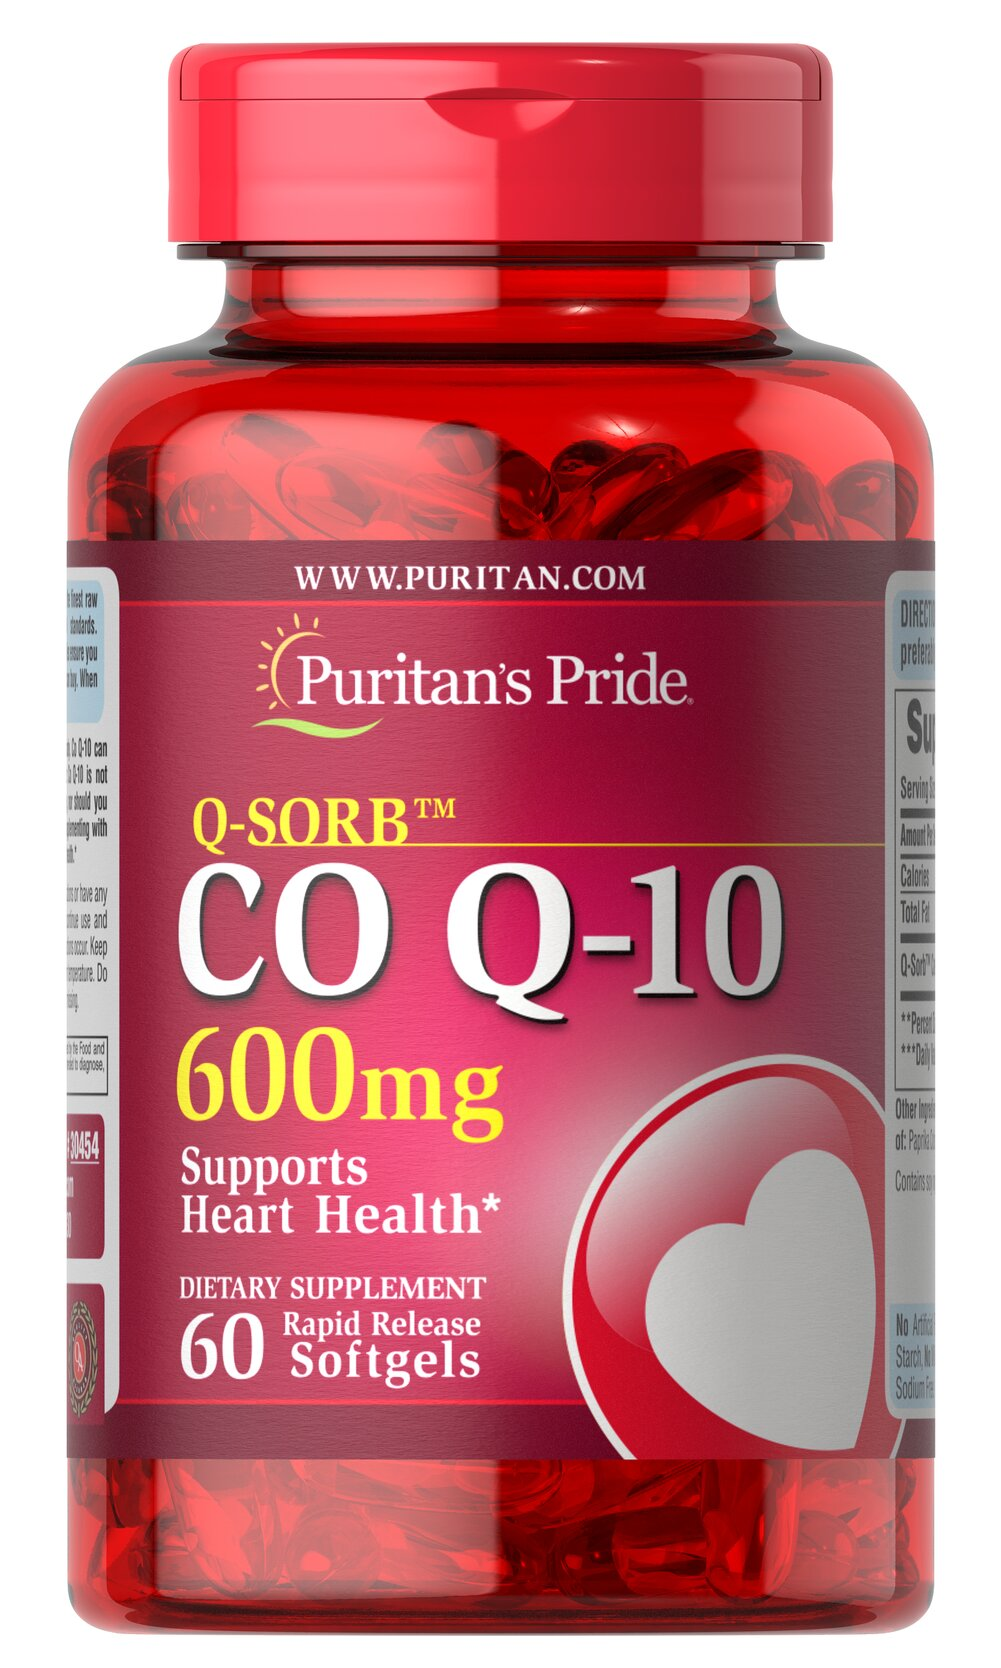 Q-SORB™ COQ-10 600 mg <p>Puritan's Pride Q-Sorb™ Co Q-10 (coq10) provides antioxidant support for your heart and ensures potency and purity.**</p> <p>Our Q-Sorb™ Co Q-10 is hermetically sealed in rapid release softgels to provide superior absorption</p> <p>Contributes to your heart and cardiovascular wellness**</p> <p>Helps support blood pressure levels already within a normal range**</p> <p>Promotes energy production within your heart, brain